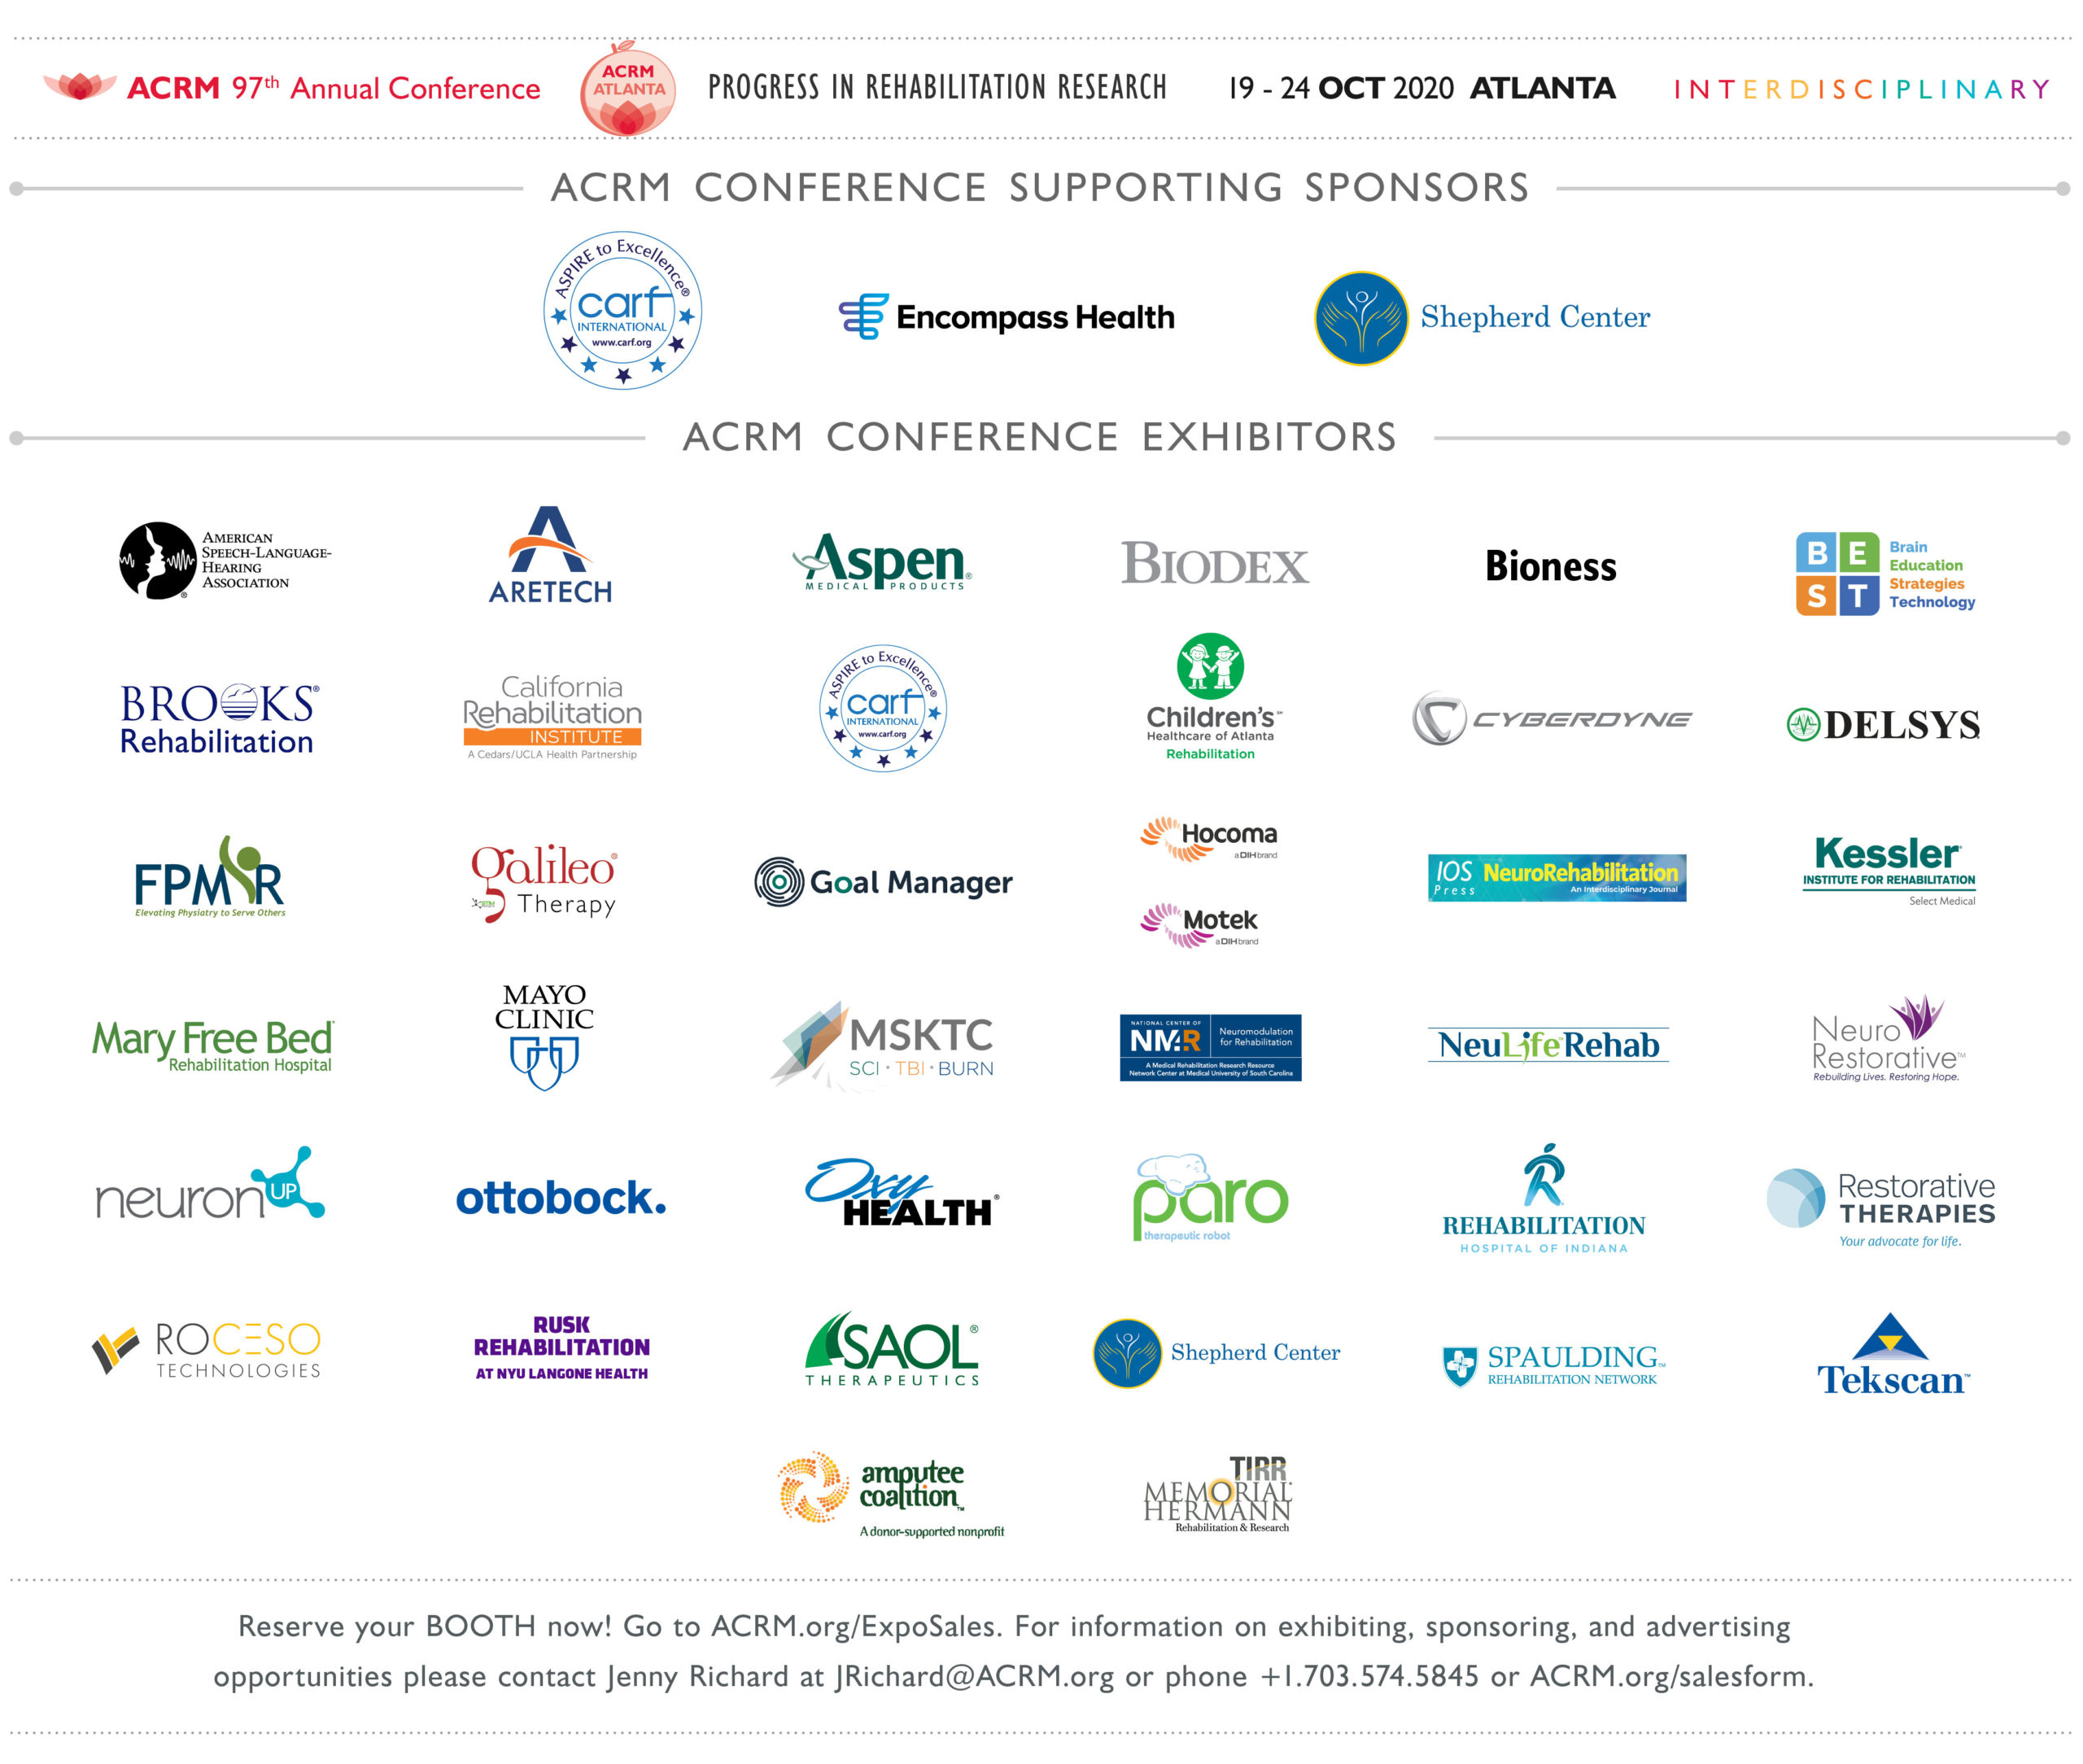 ACRM 2020 Sponsors and Exhibitors